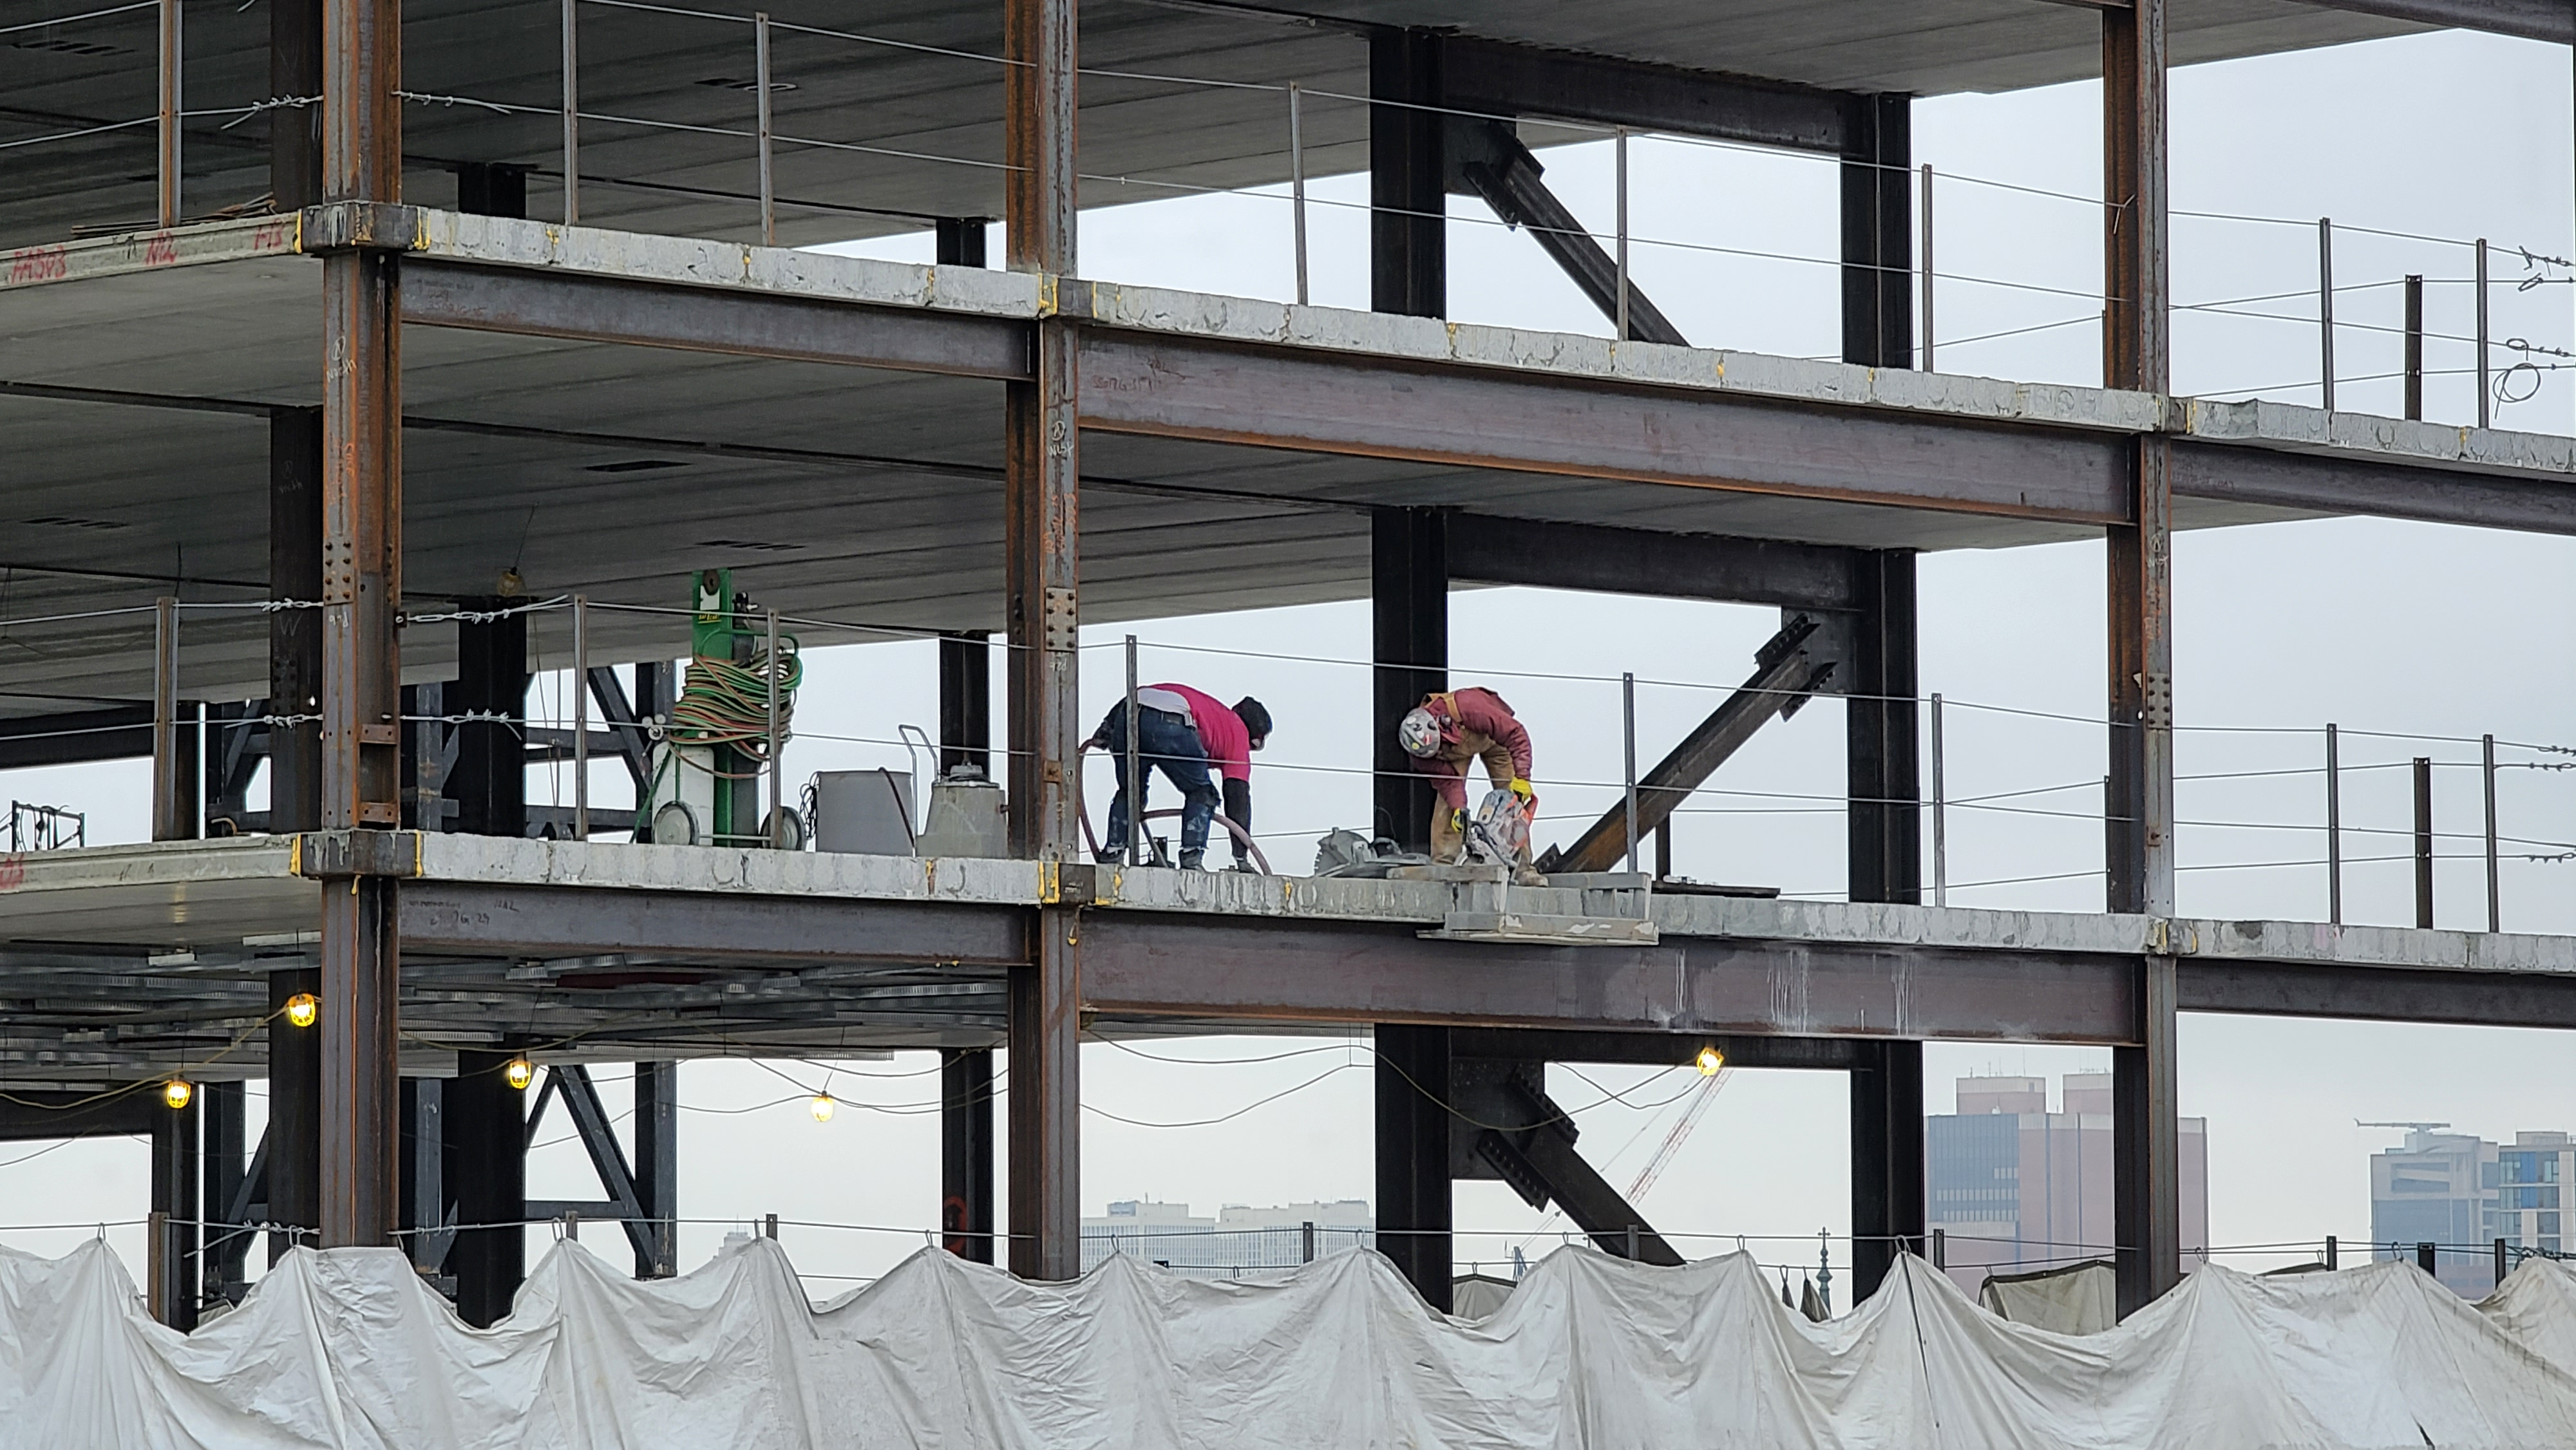 Workers on the 9th floor of the rising tower at 1300 Fairmount Ave.